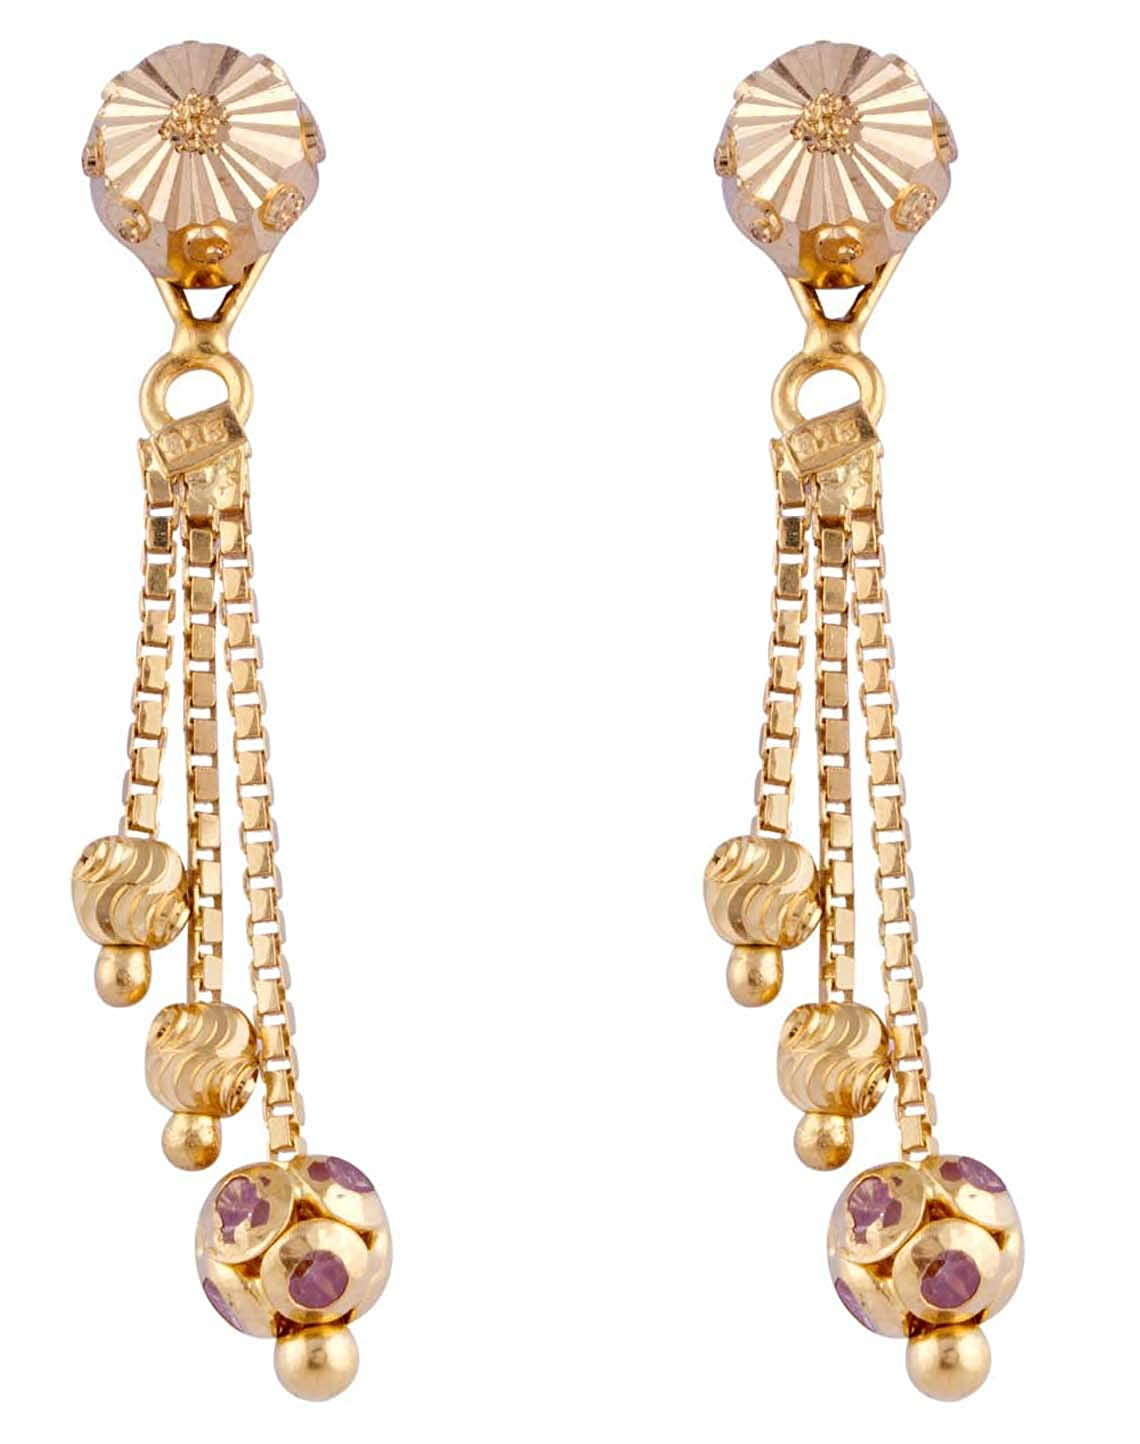 334b5eca7 Buy Paliwal Jewellers 22 KT Yellow Gold Sui Dhaga Earring For Women and  Girls Online at Low Prices in India | Amazon Jewellery Store - Amazon.in